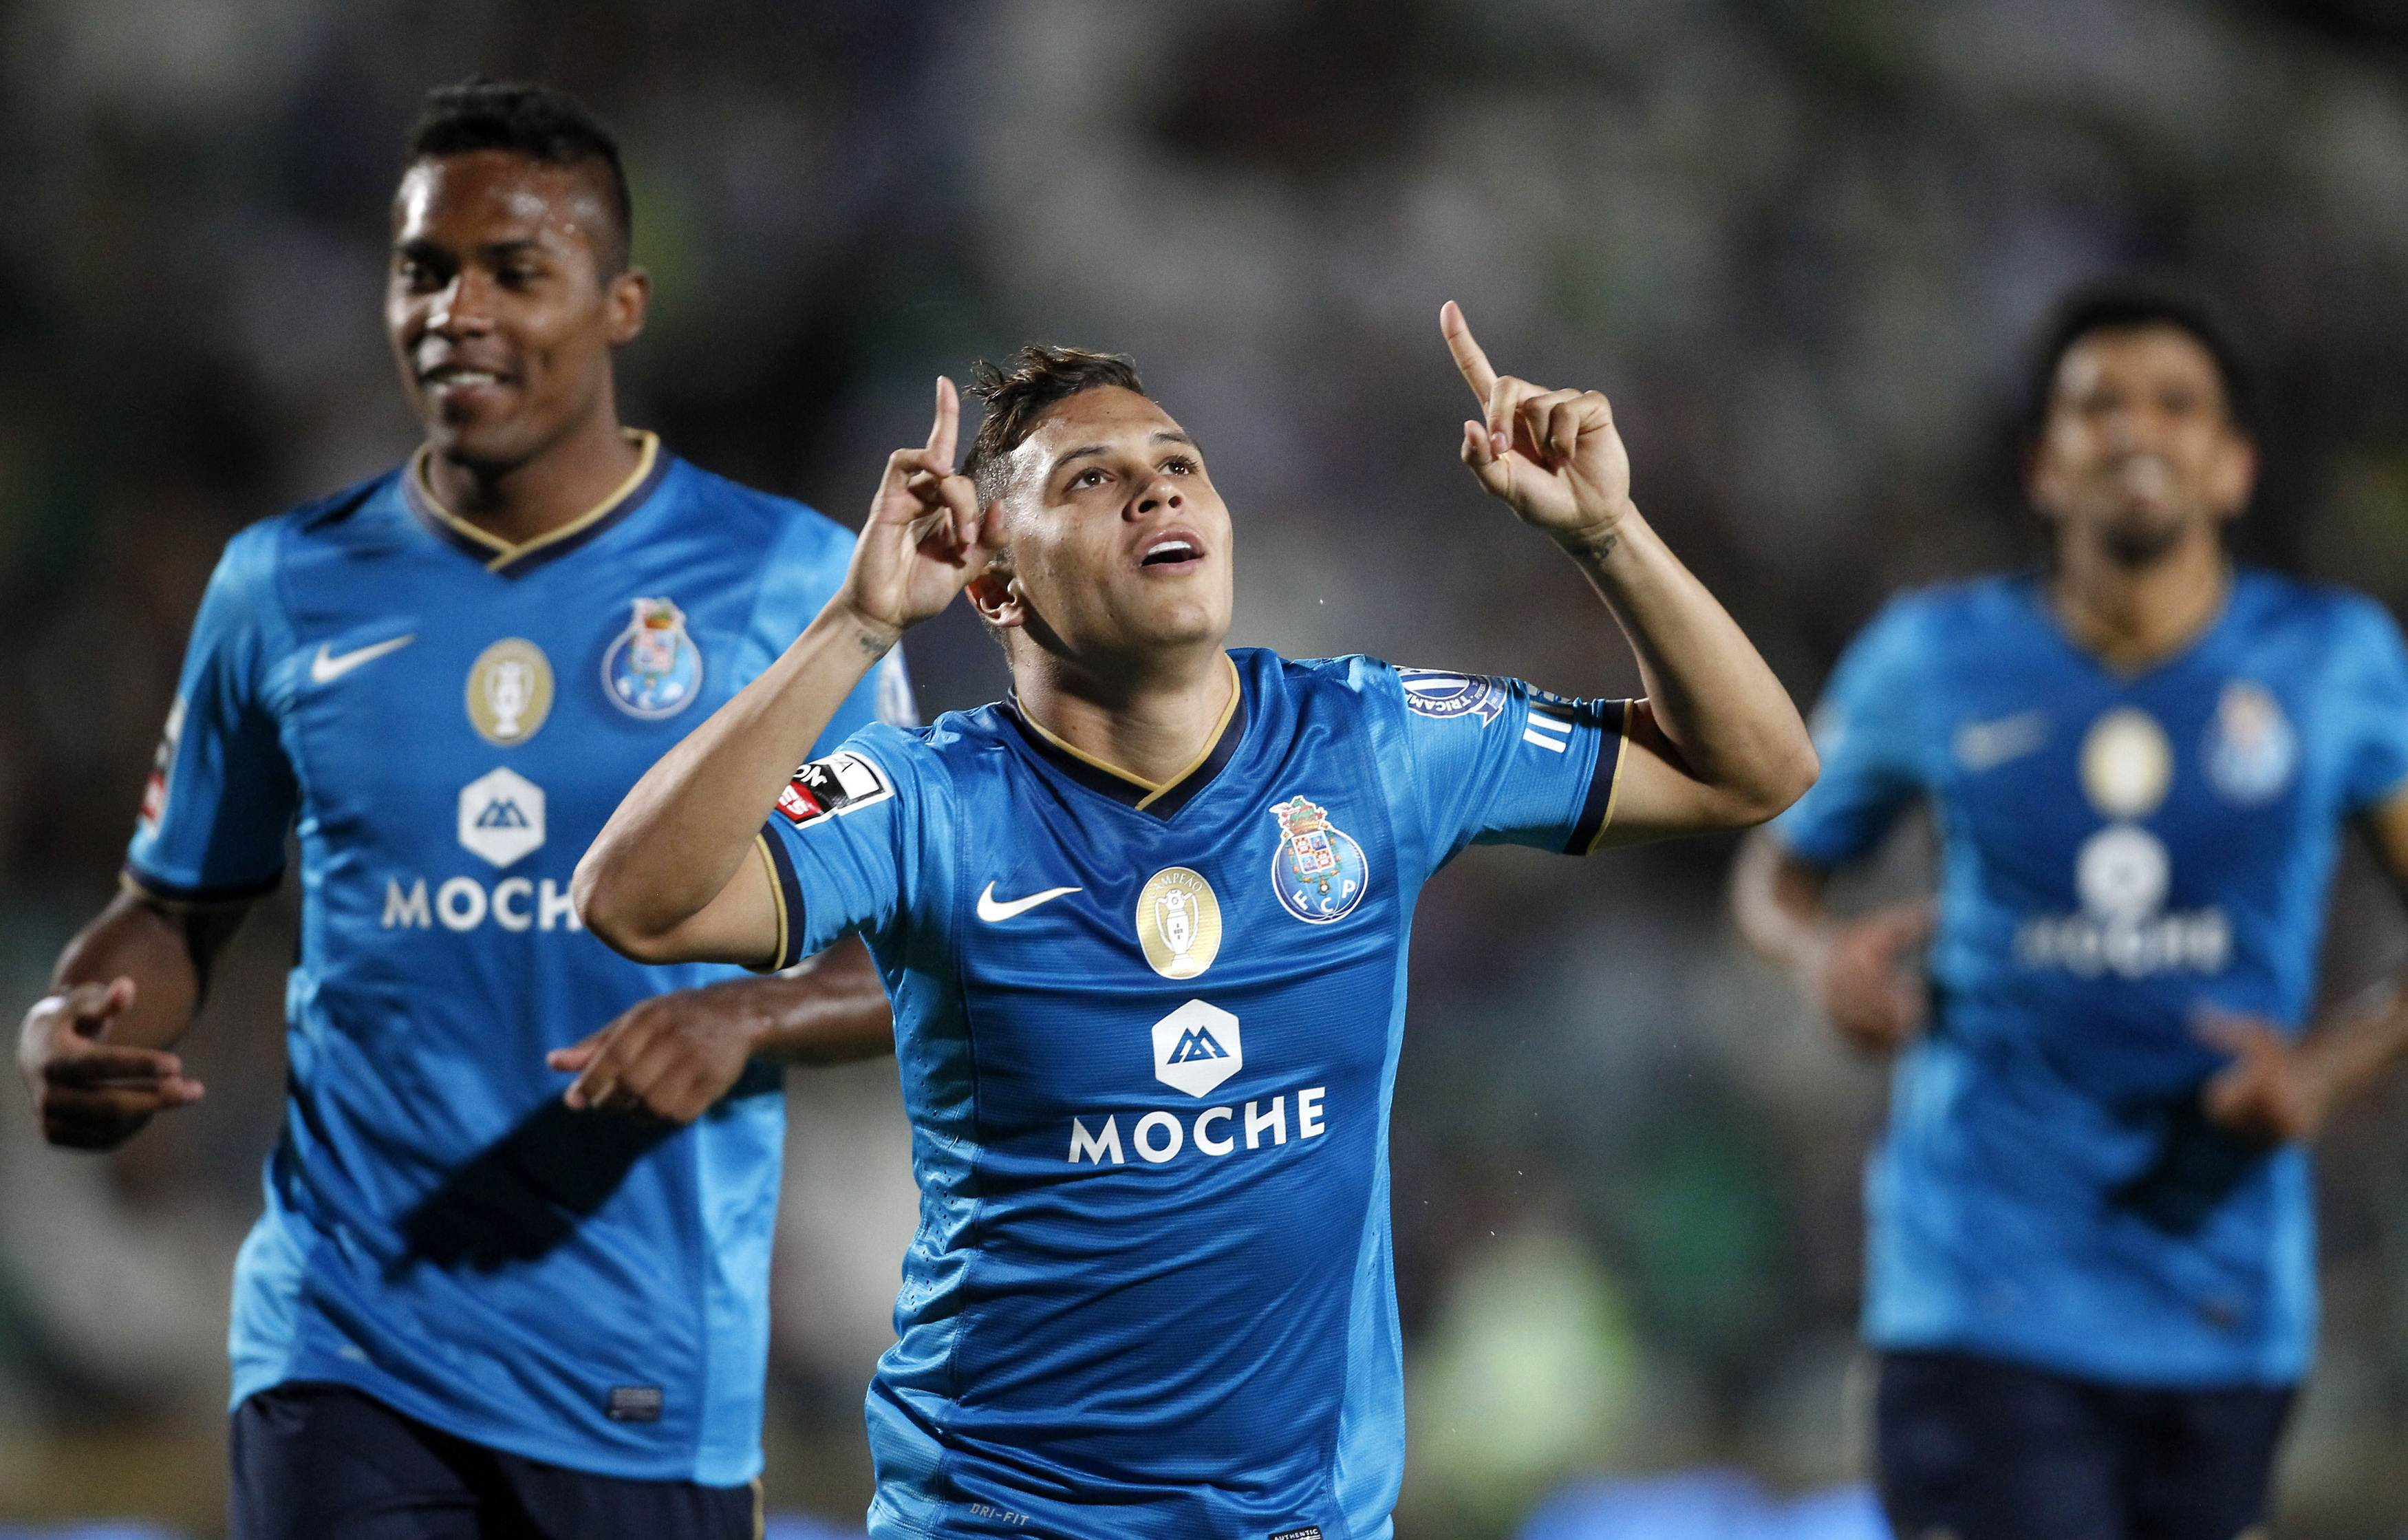 Porto's Juan Quintero celebrates his goal against Setubal near his teammates during their Portuguese Premier League soccer match at the Bonfim stadium in Setubal